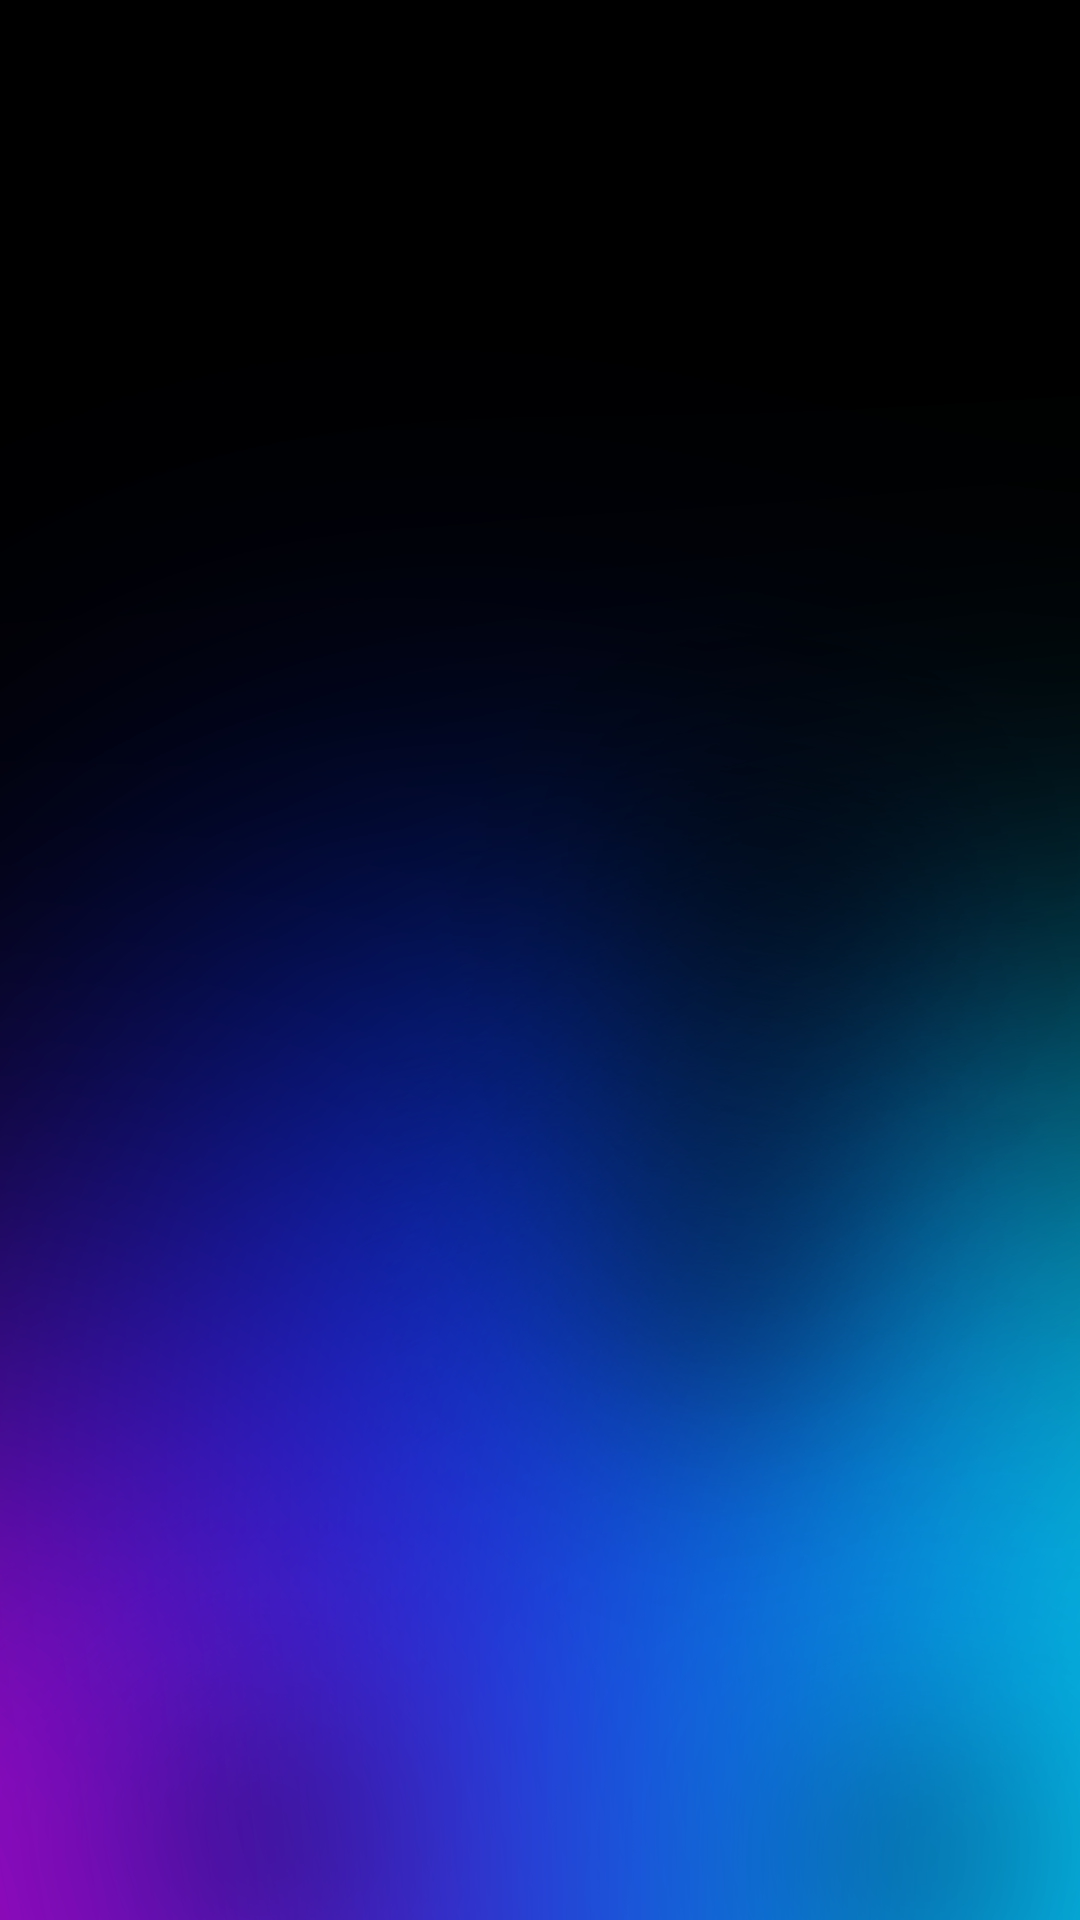 Dark Blue Gradient iPhone Wallpaper